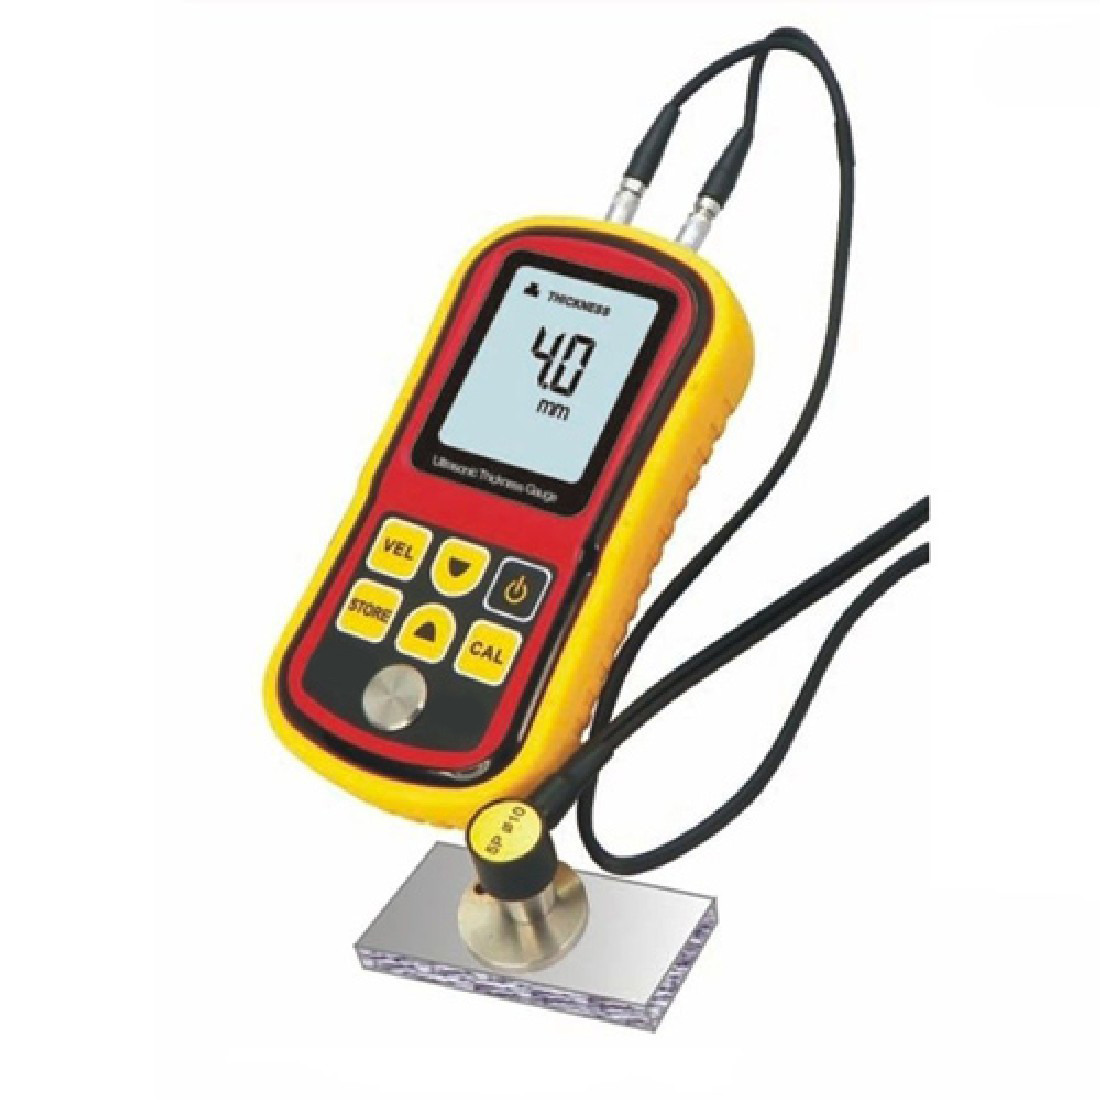 Good Limited Coating Thickness Gauge Gm100 Ultrasonic Wall Thickness Gauge Meter Tester Steel Pvc Digital Testing